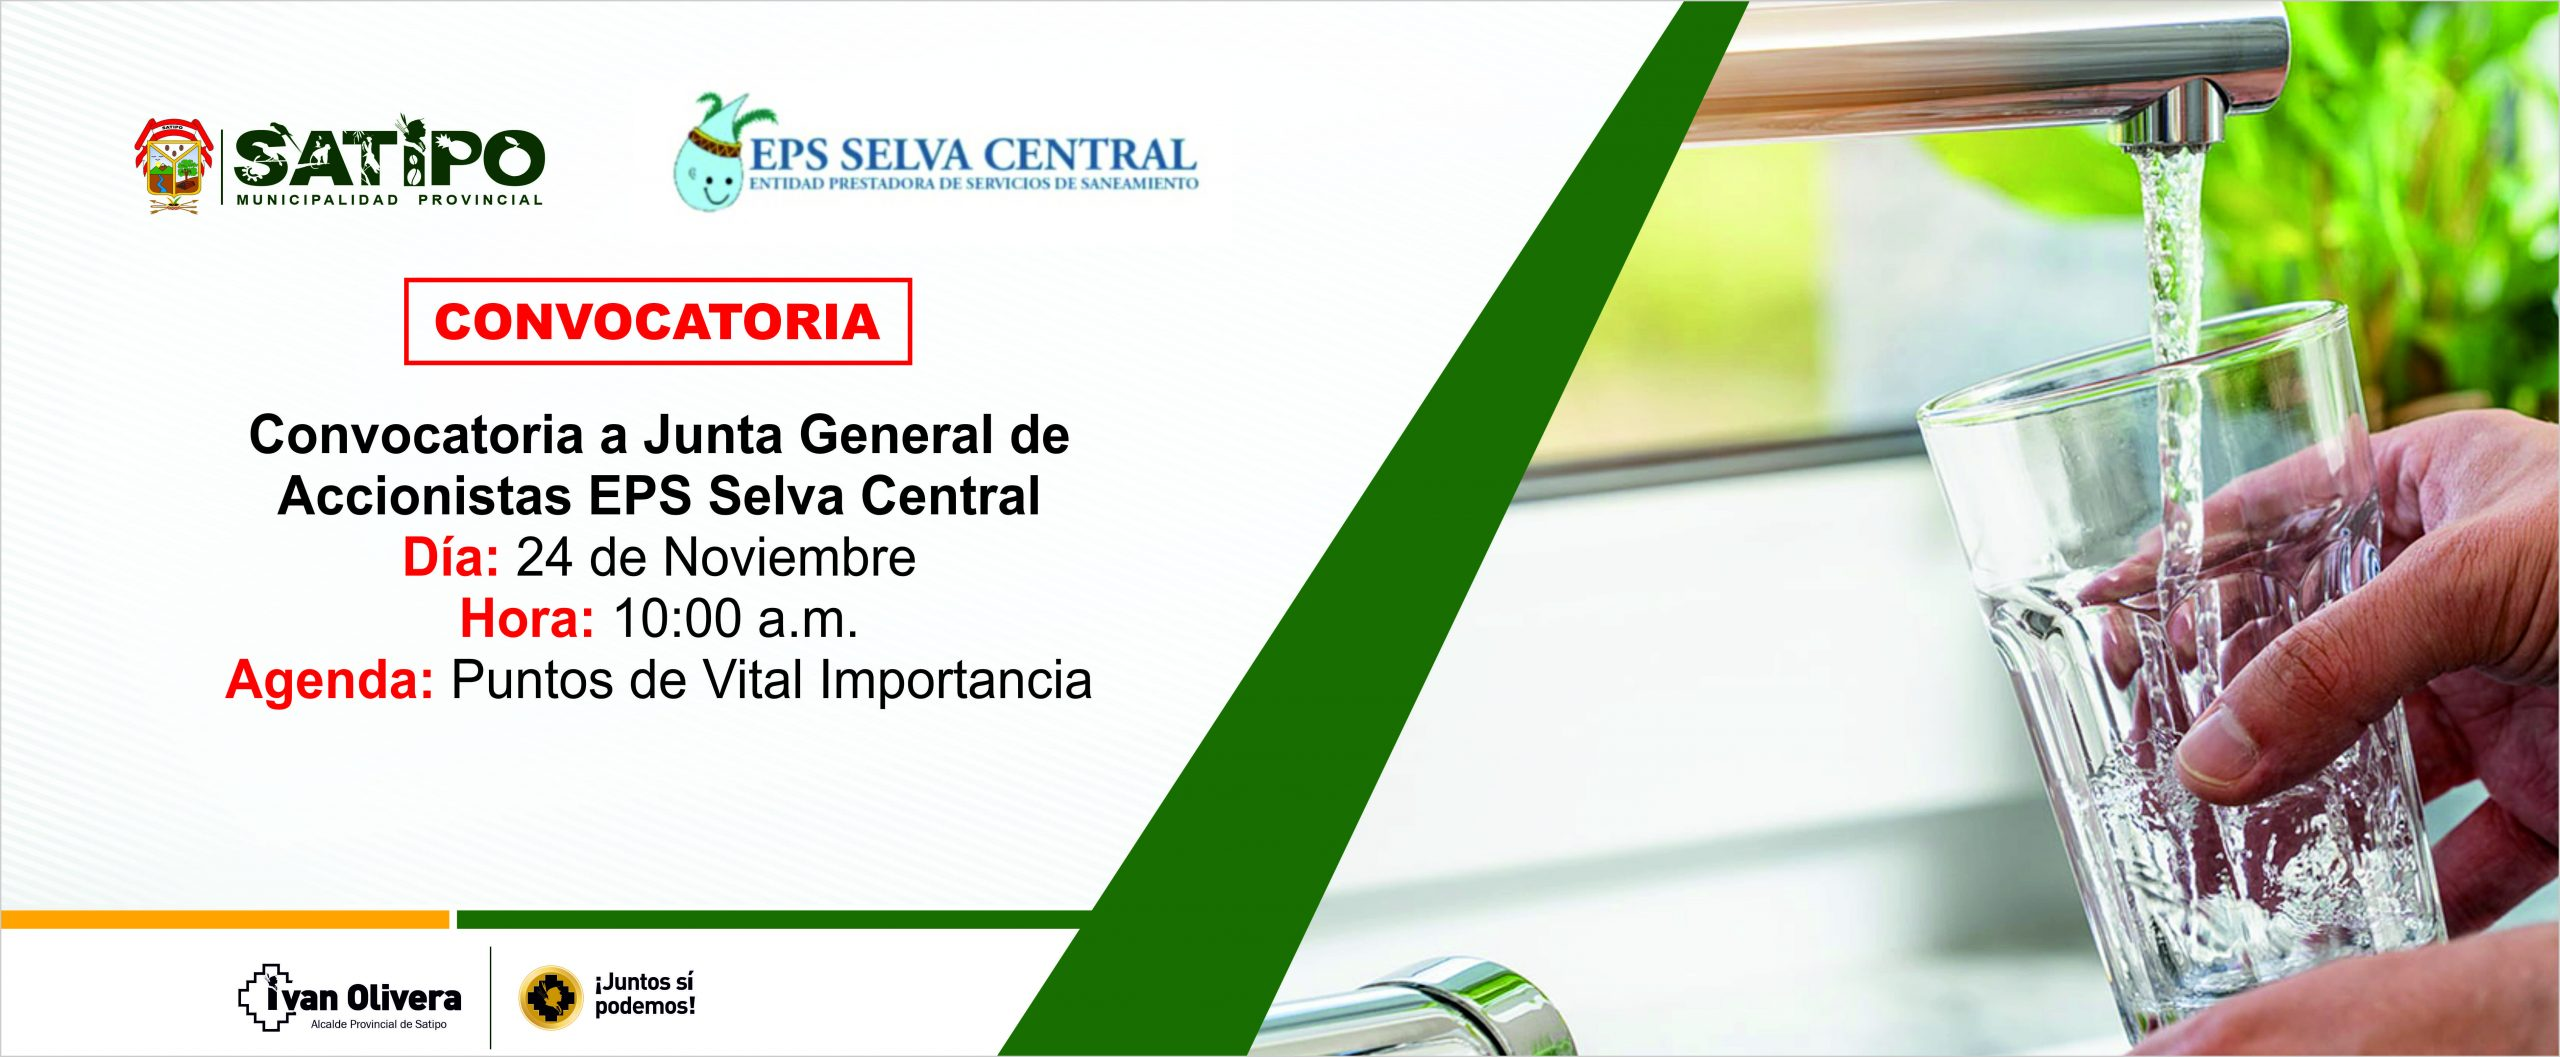 Convocatoria a Junta General de  Accionistas EPS Selva Central